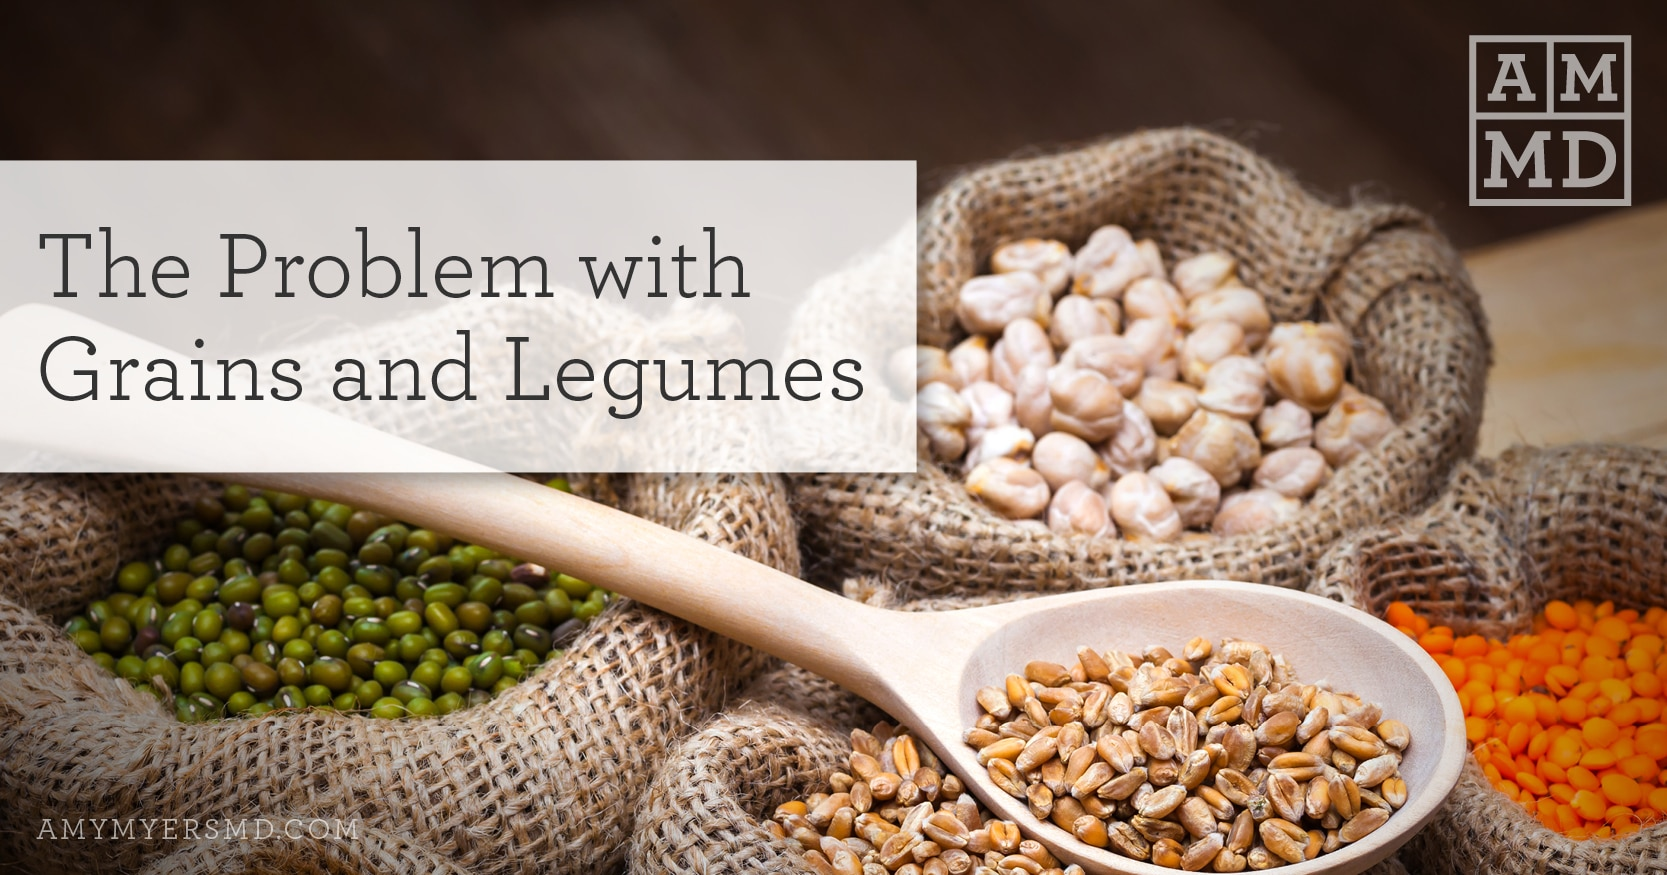 The Problem with Grains and Legumes - Featured Image - Amy Myers MD